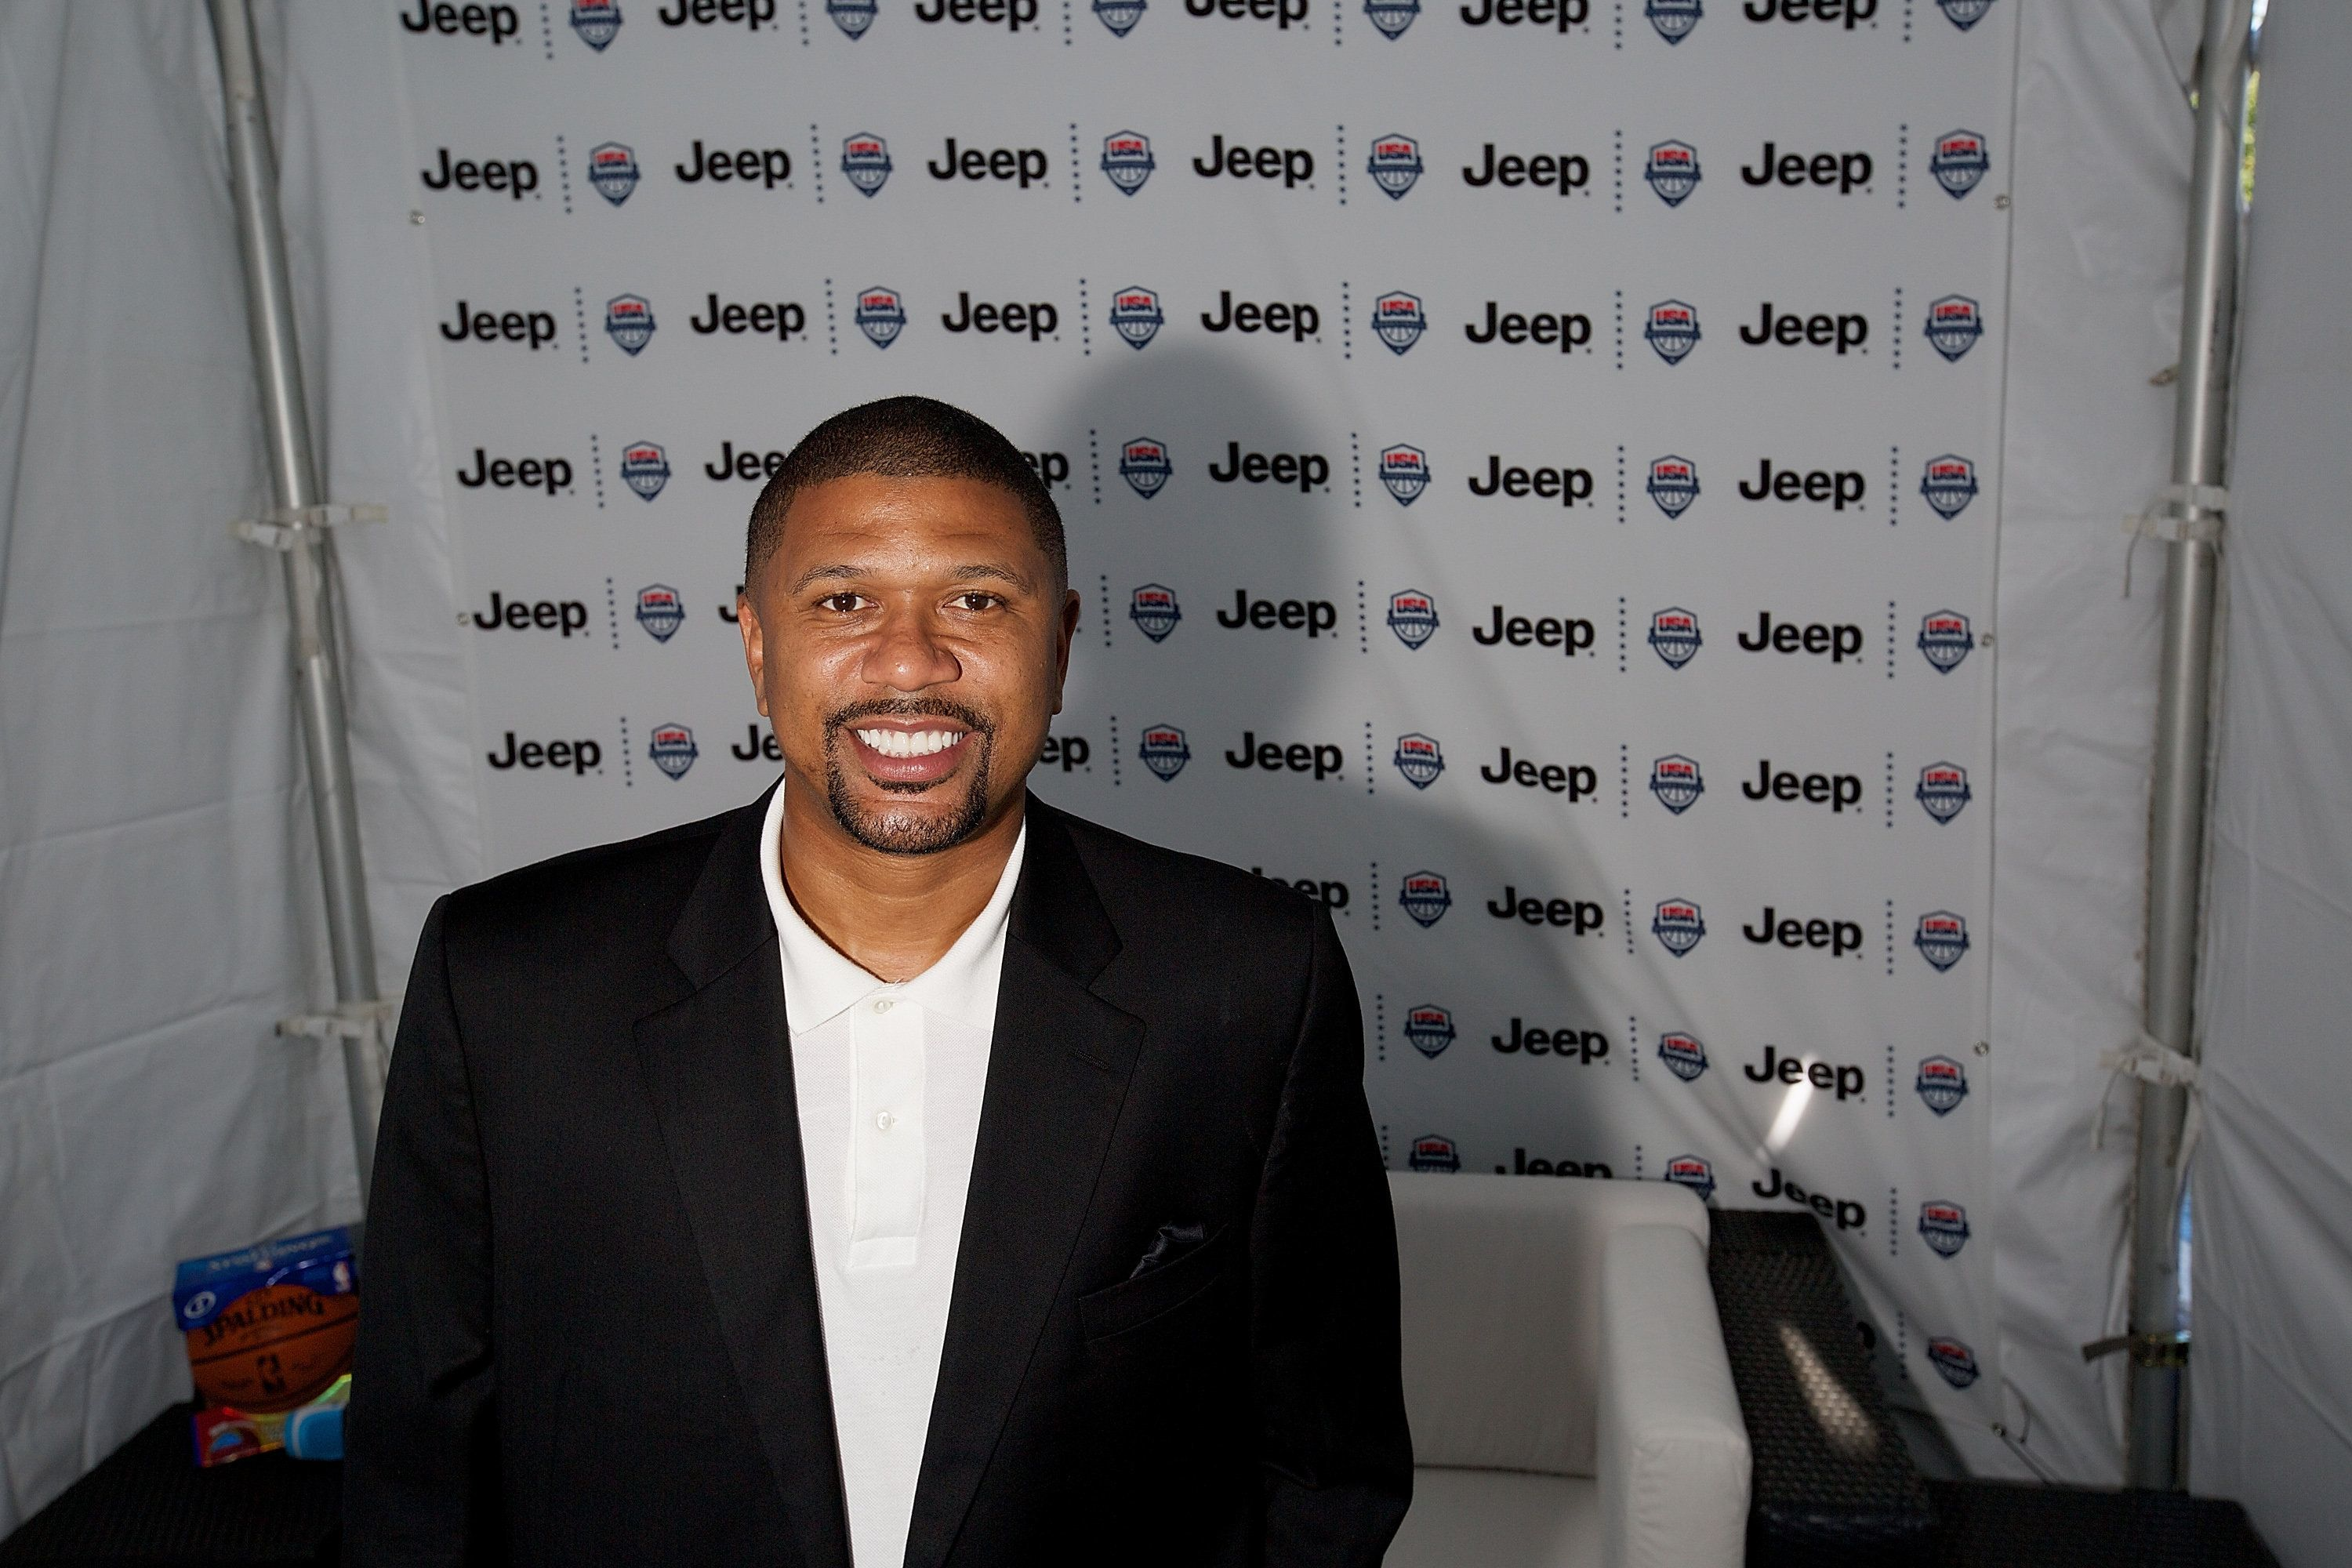 CHICAGO, IL - AUGUST 15:  Former NBA player Jalen Rose attends Kyrie Irving, Jalen Rose, and Jalen Rose Leadership Academy Students Celebrate the Summer of Jeep at Navy Pier on August 15, 2014 in Chicago, Illinois.  (Photo by Jeff Schear/Getty Images for Jeep)